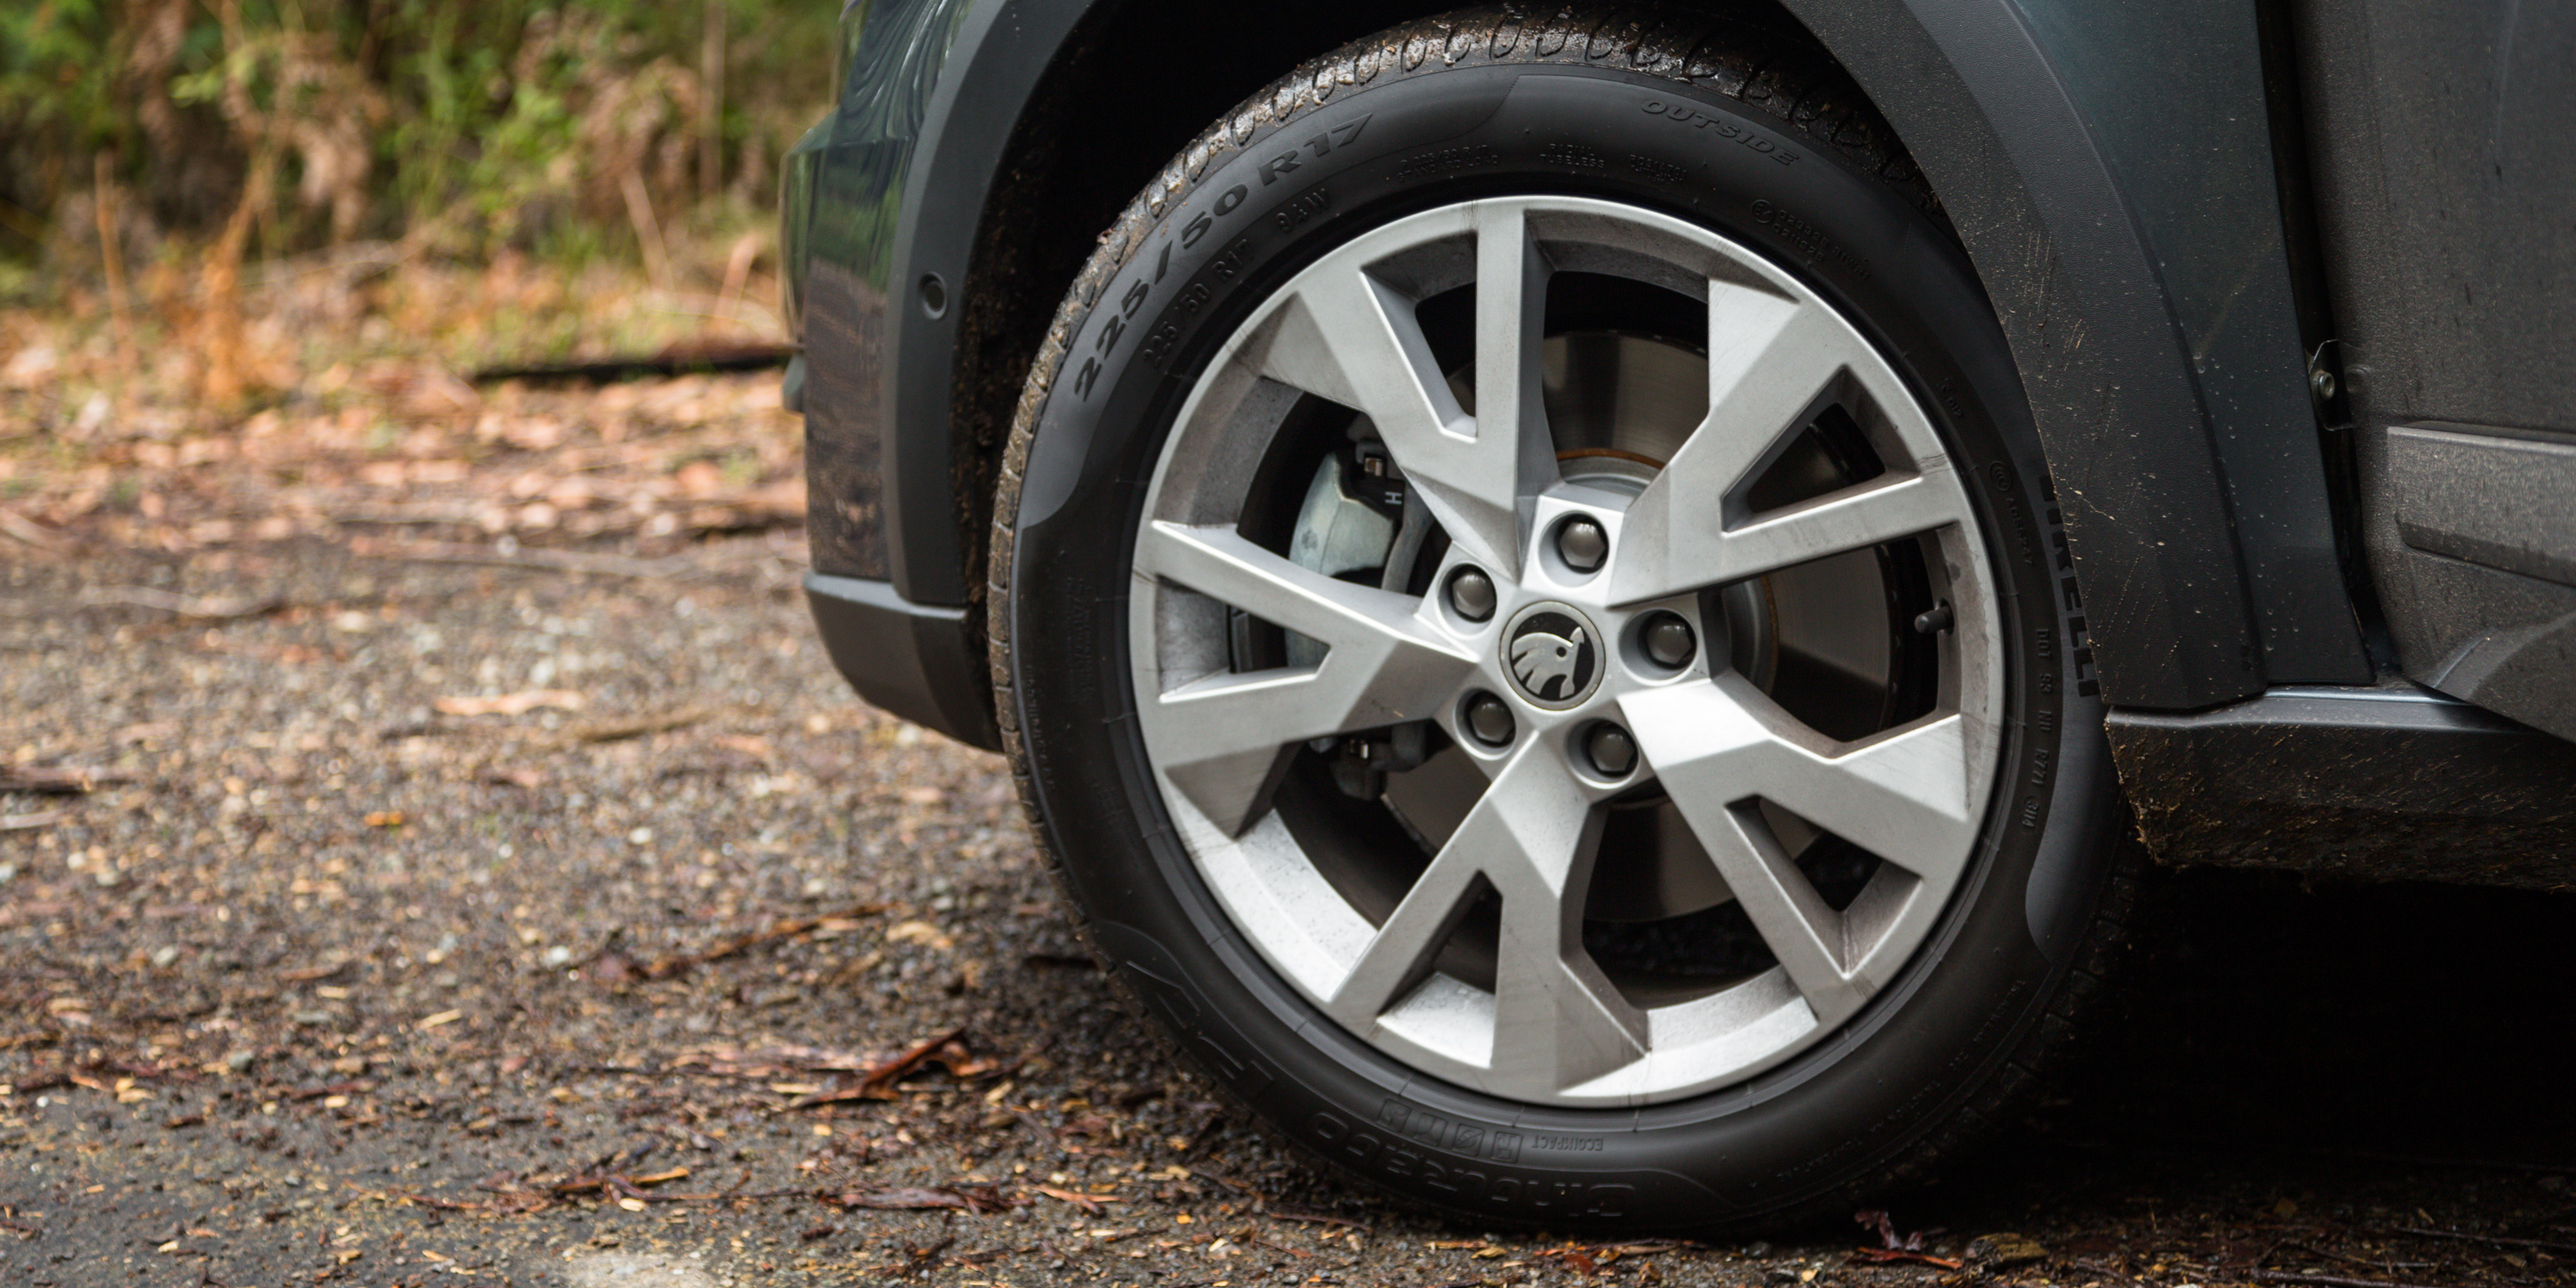 2016 Skoda Octavia Scout Exterior Wheel Trim (Photo 9 of 23)